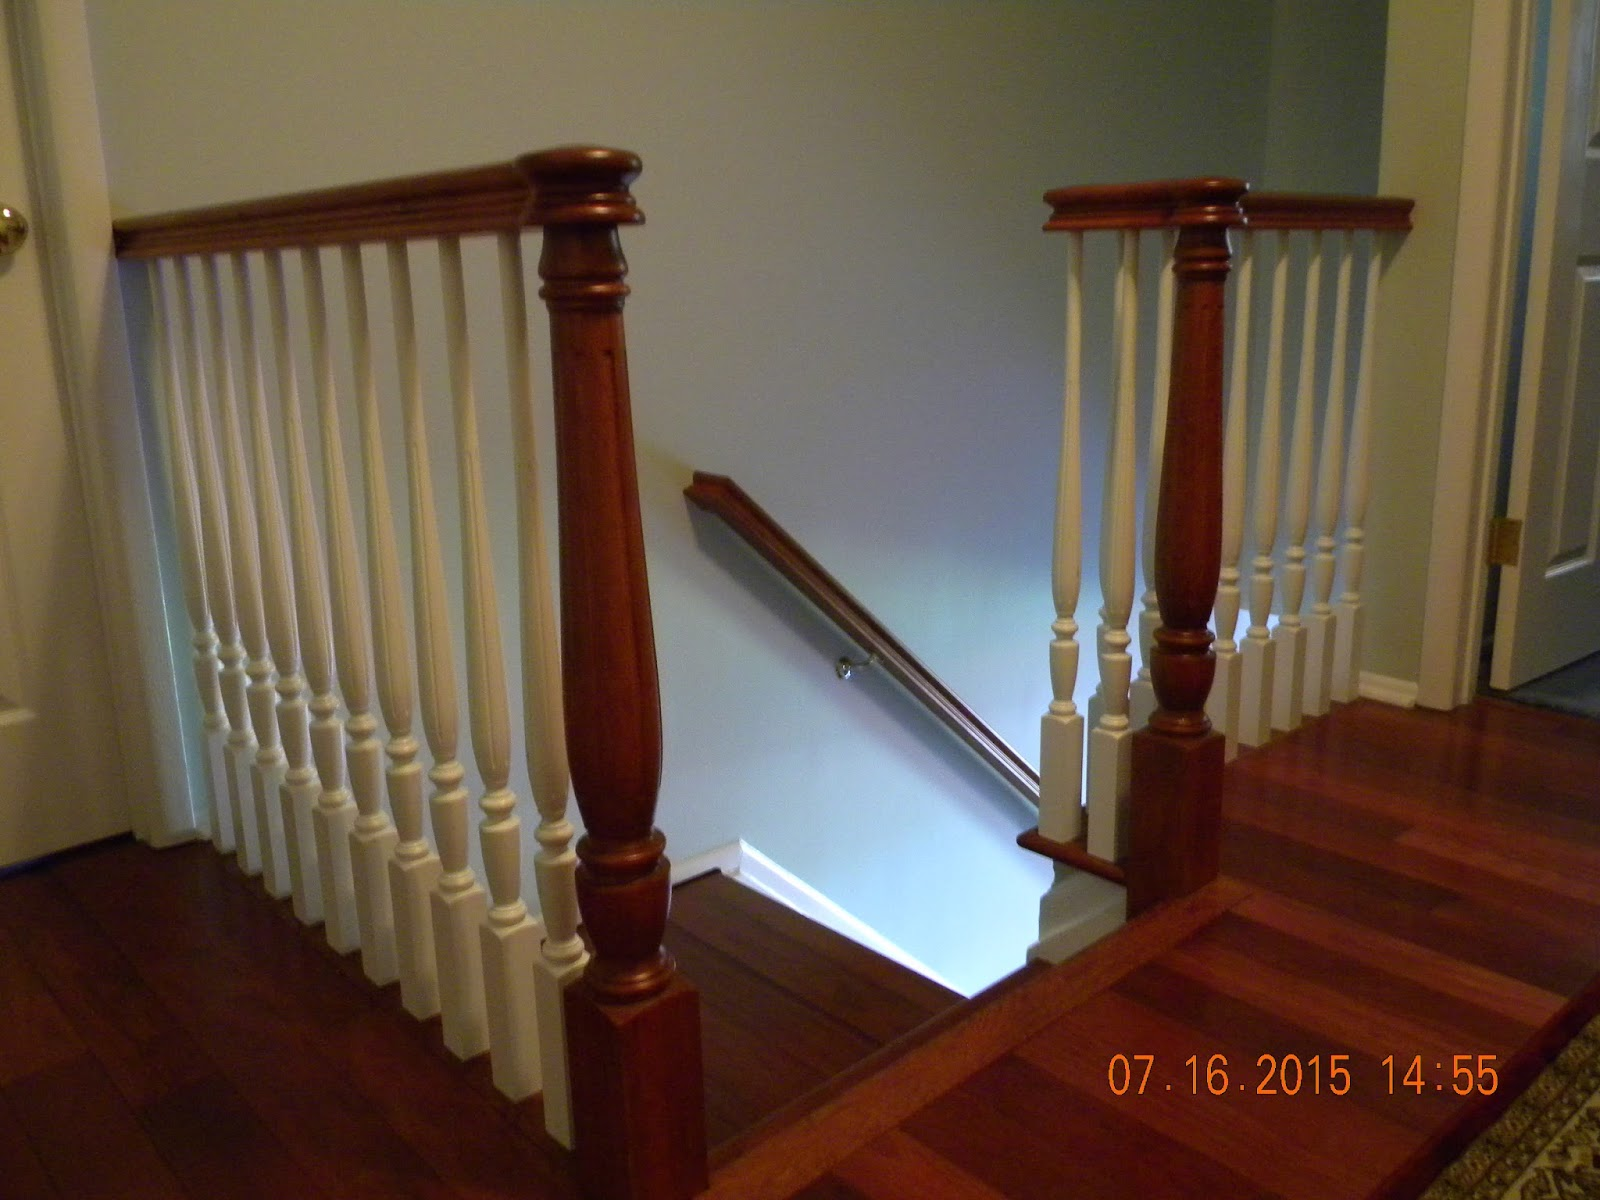 Wood Stairs and Rails and Iron Balusters: August 2015